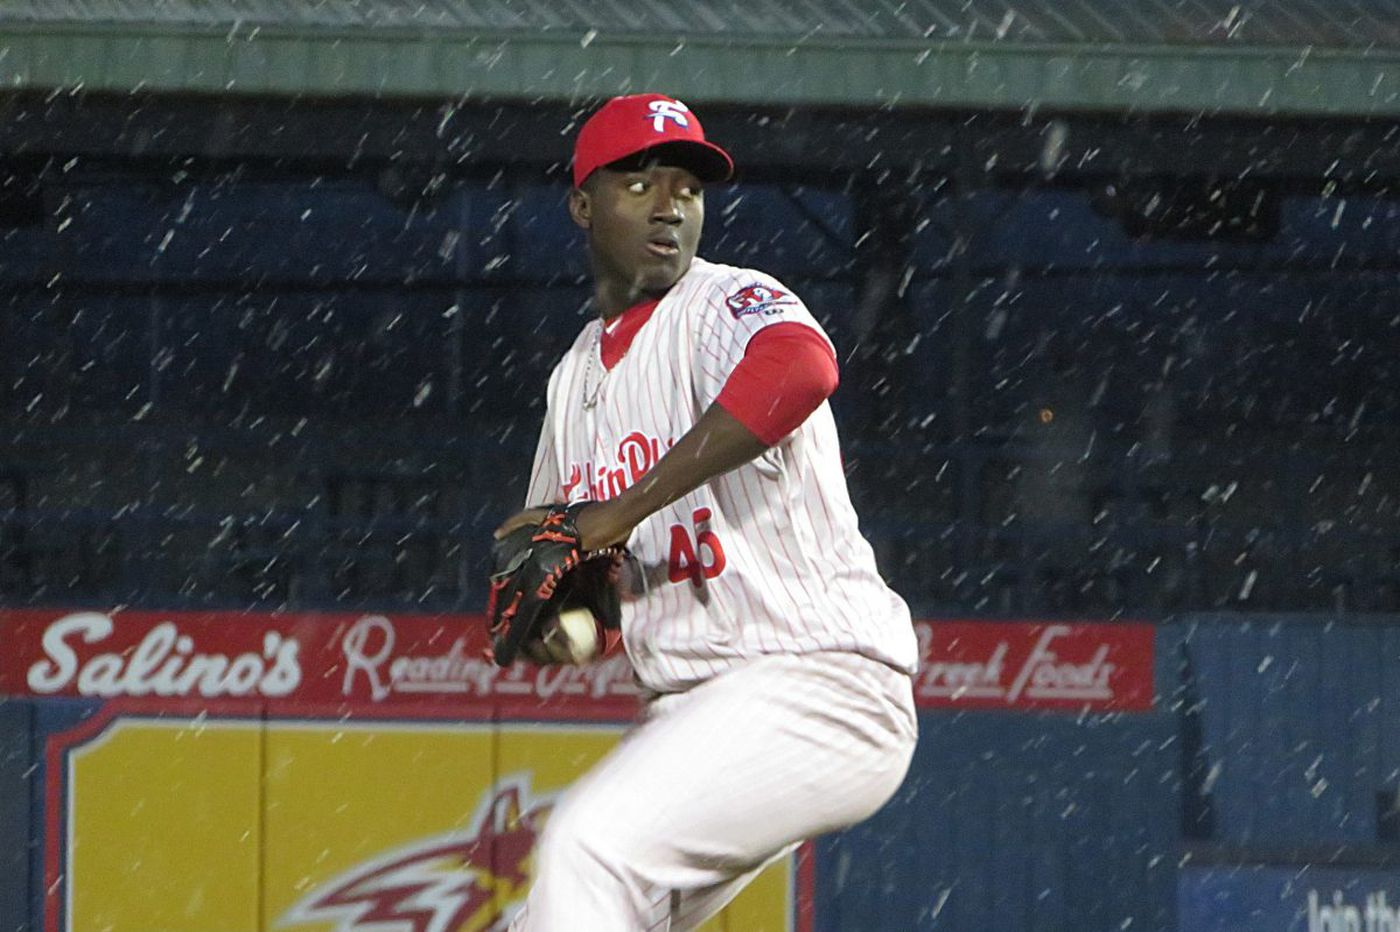 Phillies pitching prospect Franklyn Kilome has eventful first outing for Reading